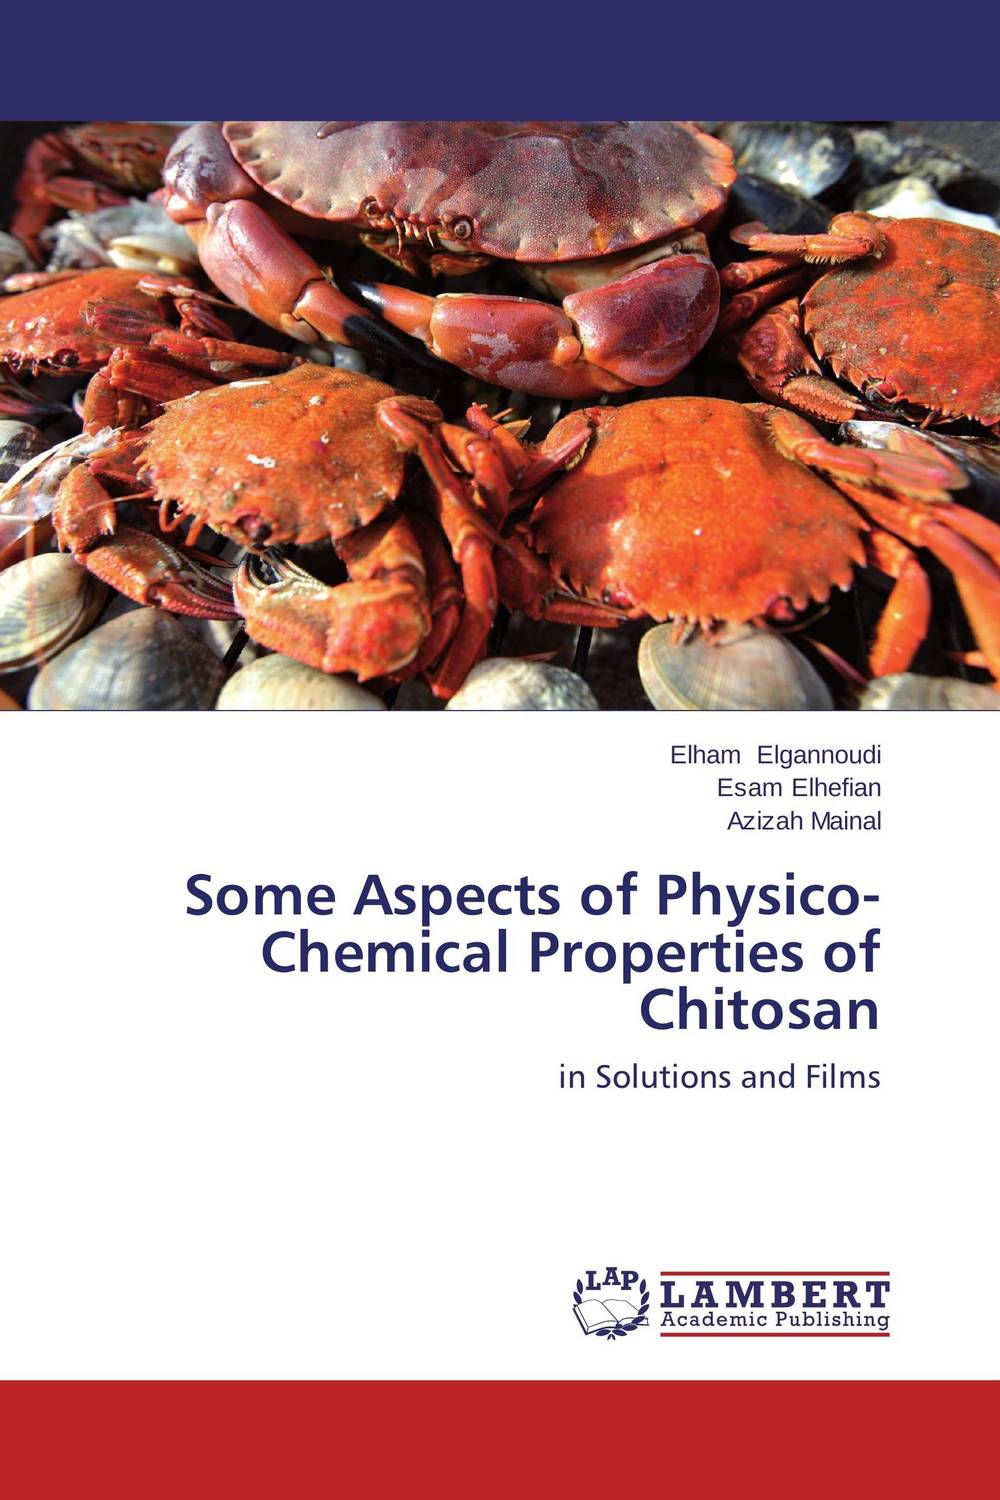 Some Aspects of Physico-Chemical Properties of Chitosan